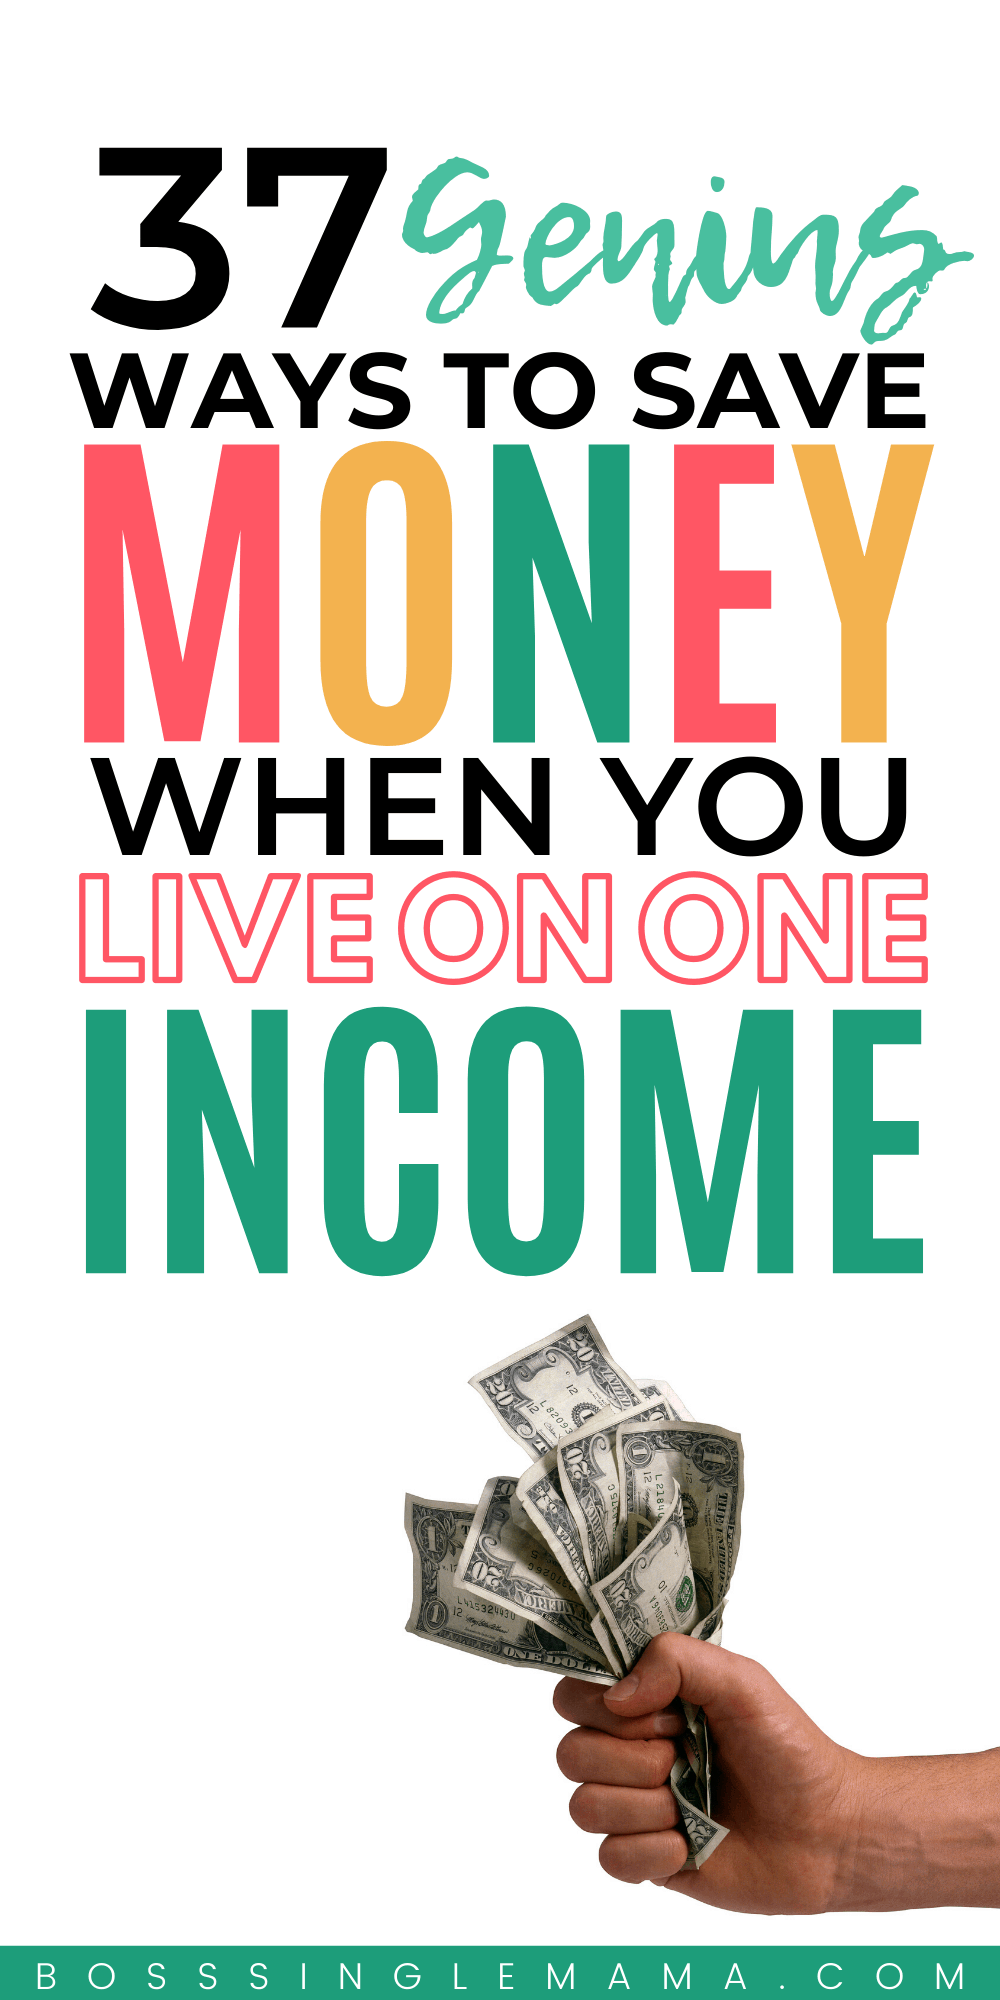 living on one income